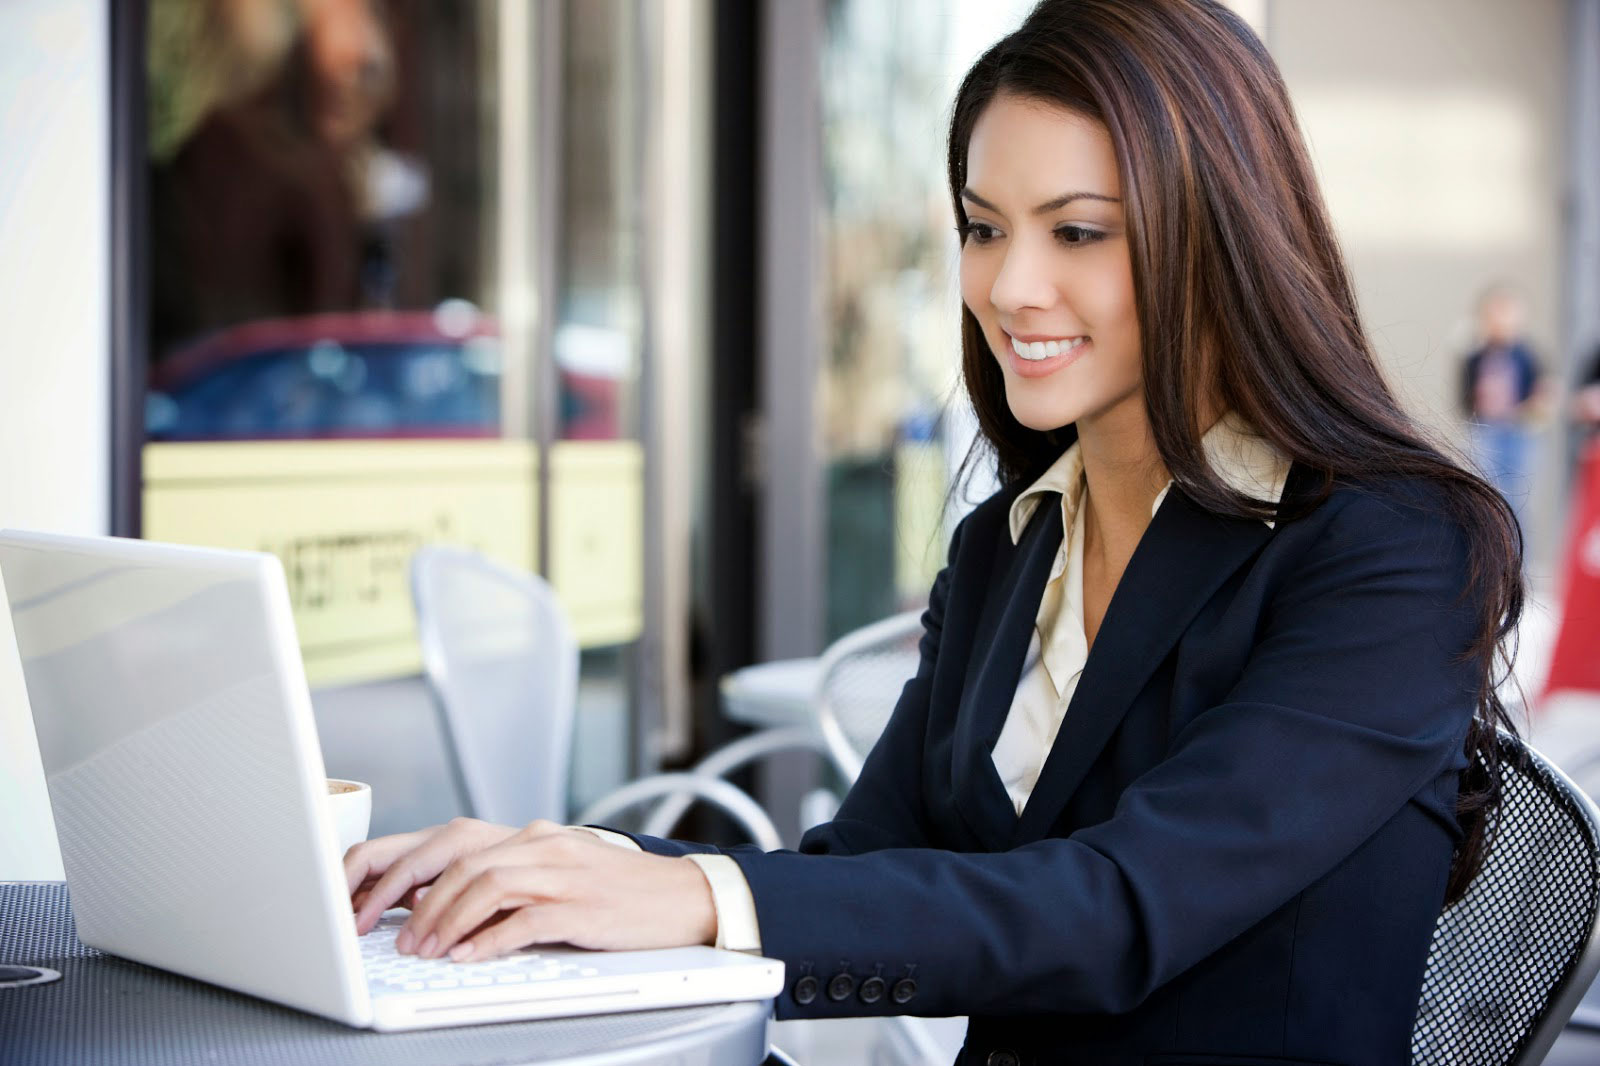 3 Reasons Why An Online MBA Degree Could Make You More Competitive